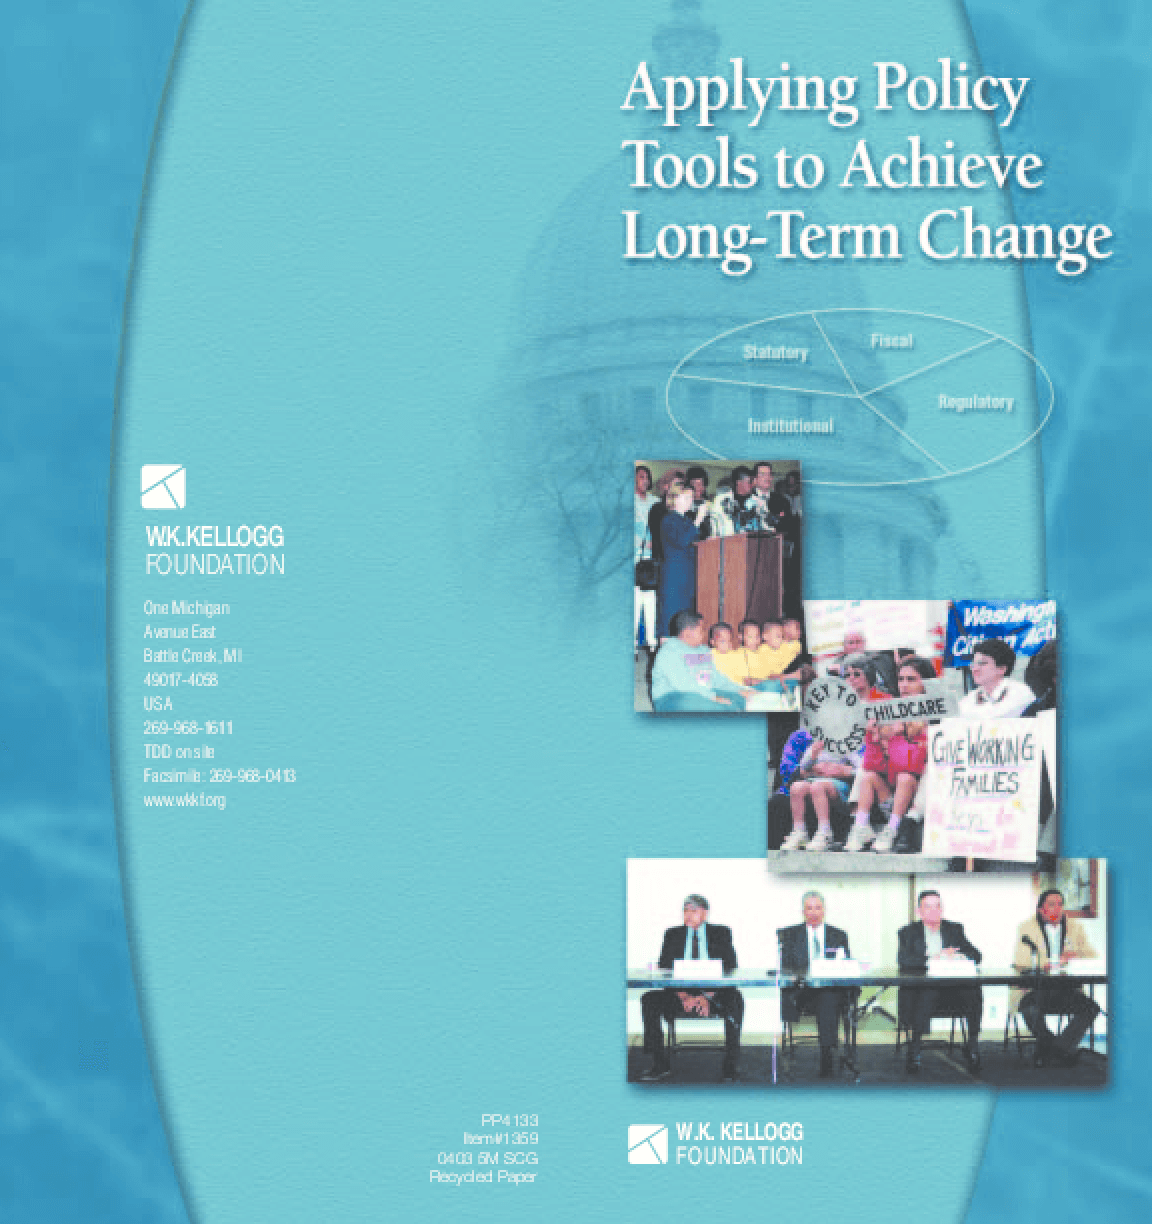 Applying Policy Tools to Achieve Long-Term Change